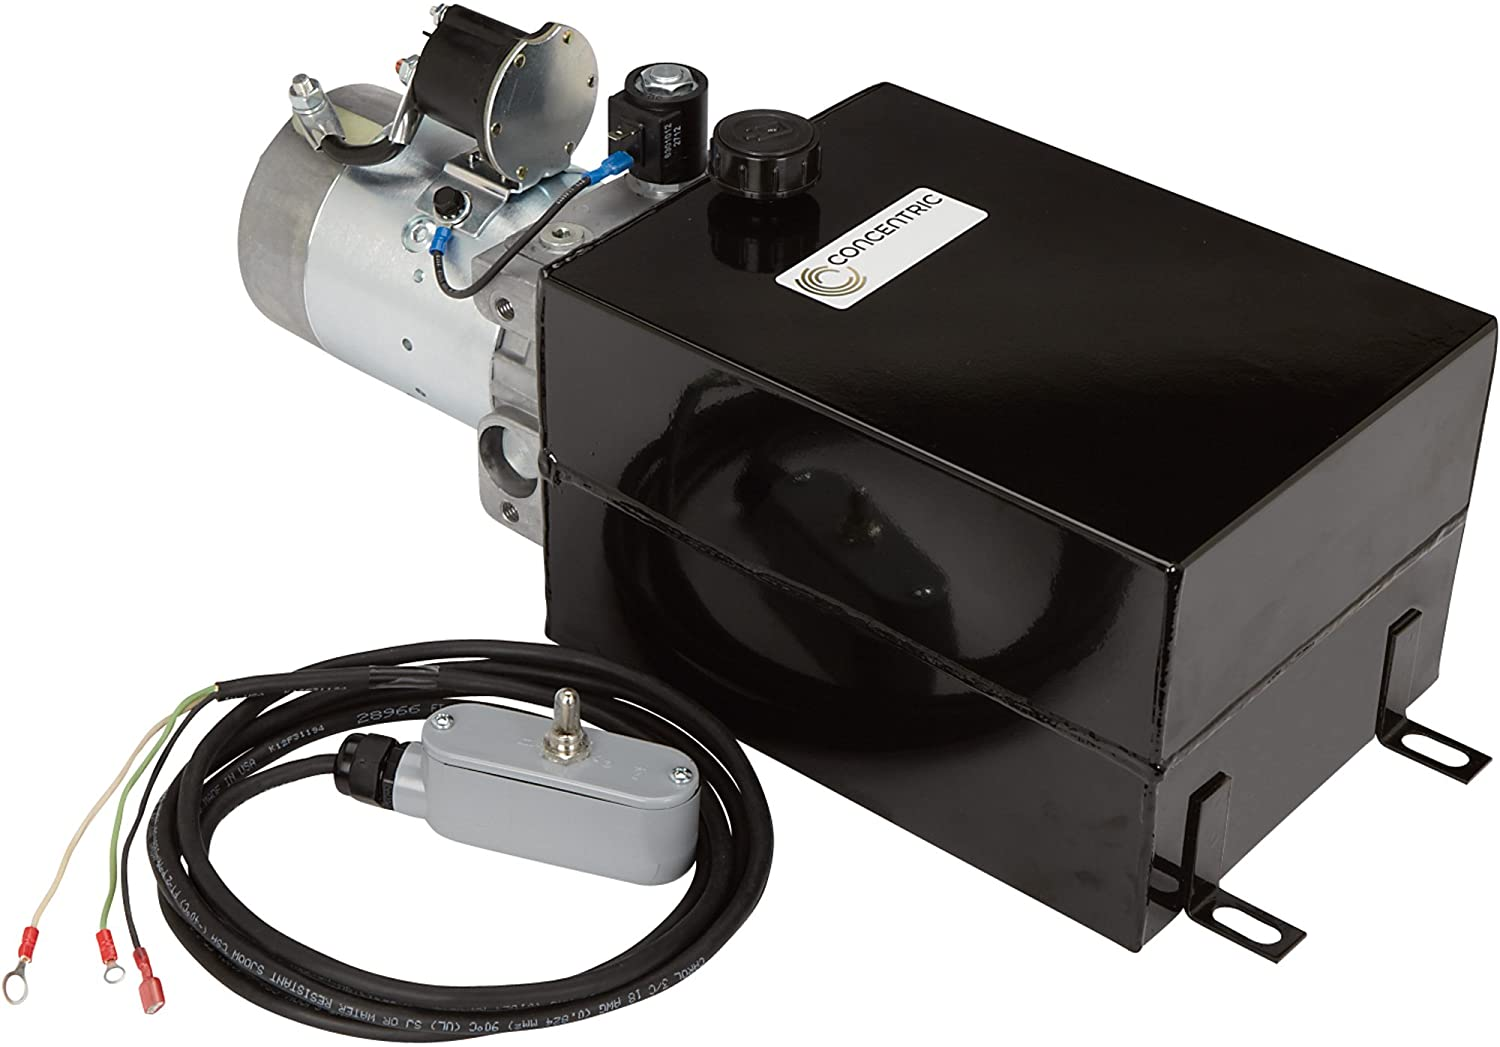 Concentric 12 Volt DC Power Unit - Solenoid Operation, Single Acting, Model Number 1261096